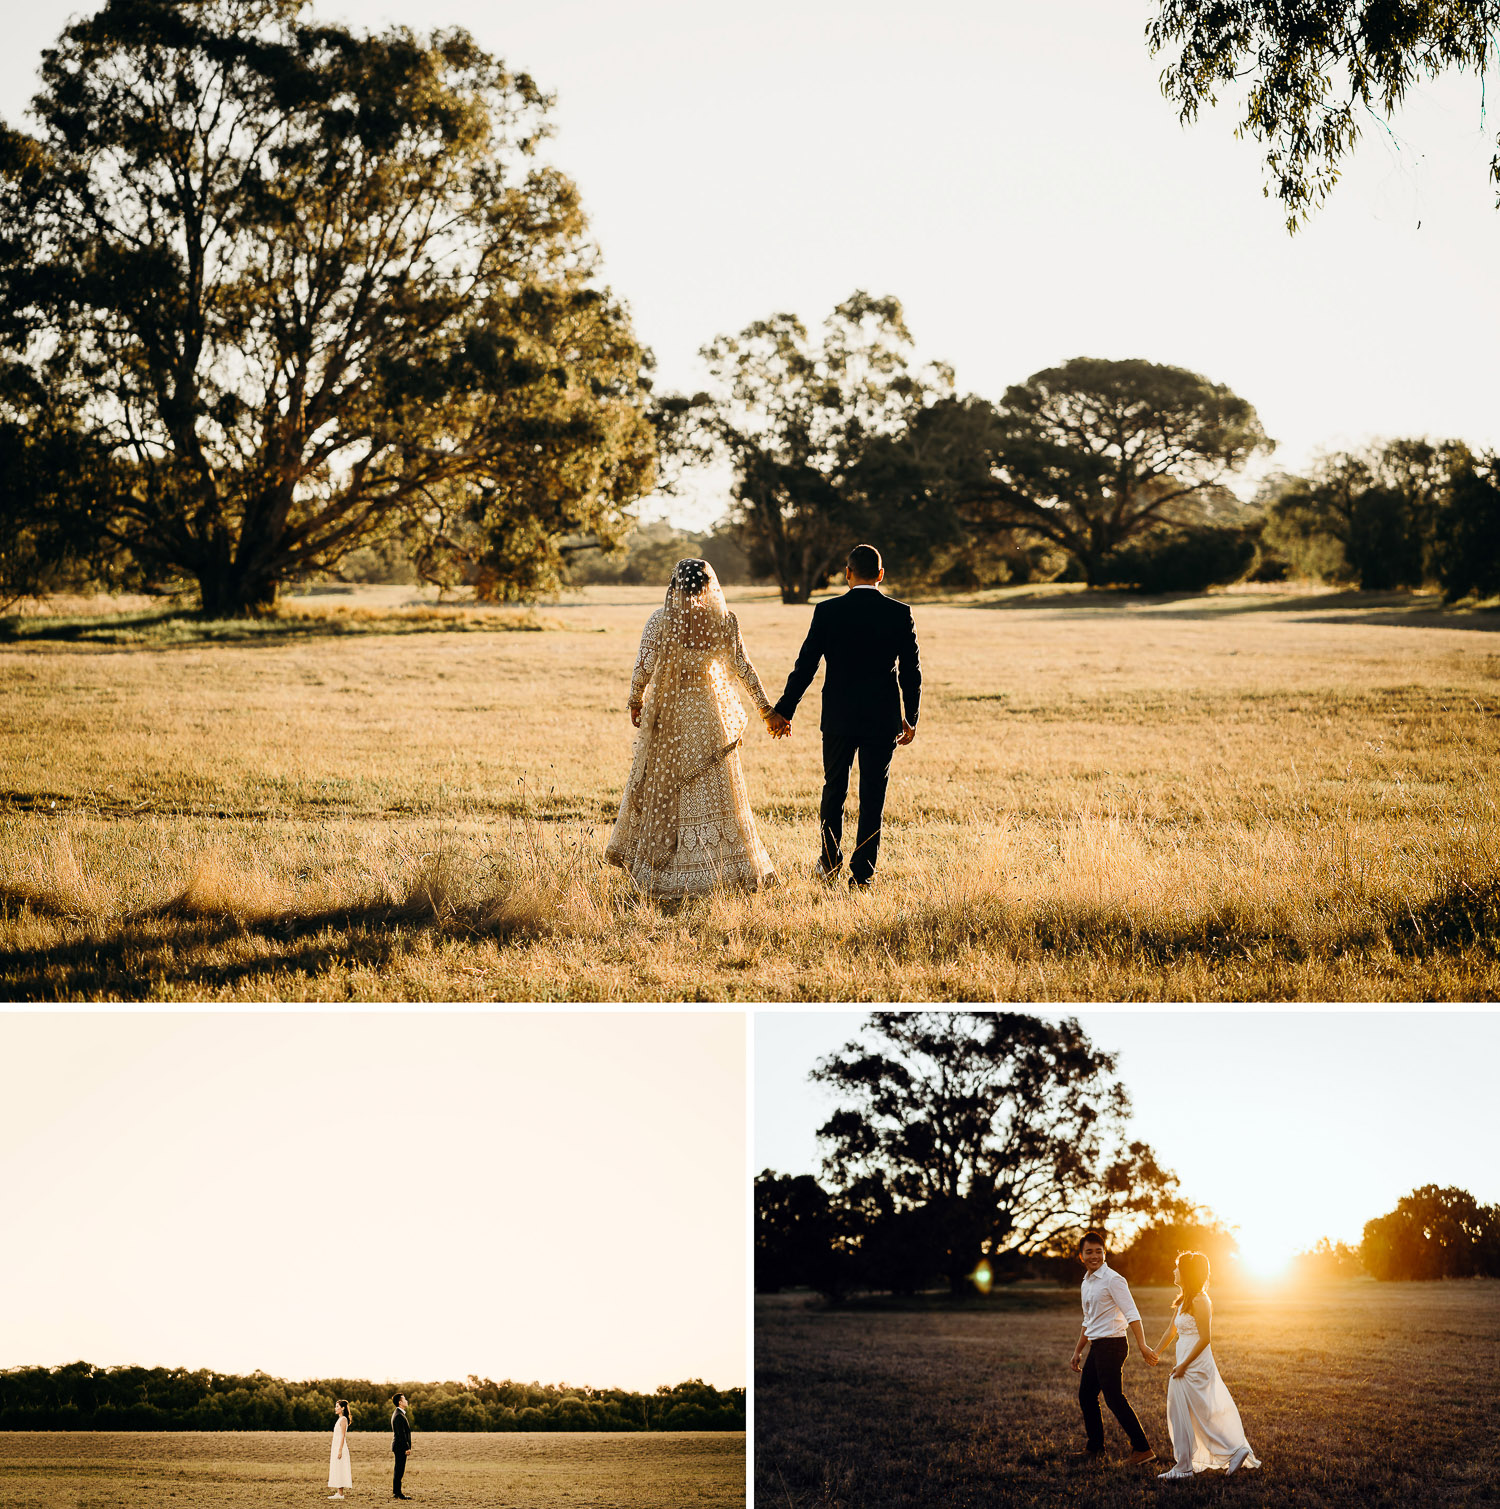 Couple prewed and engagement photoshoot in open field, sunset in open field, boy and girl in open field, photoshoot during sunset in open field, couple in gown and suit in open field